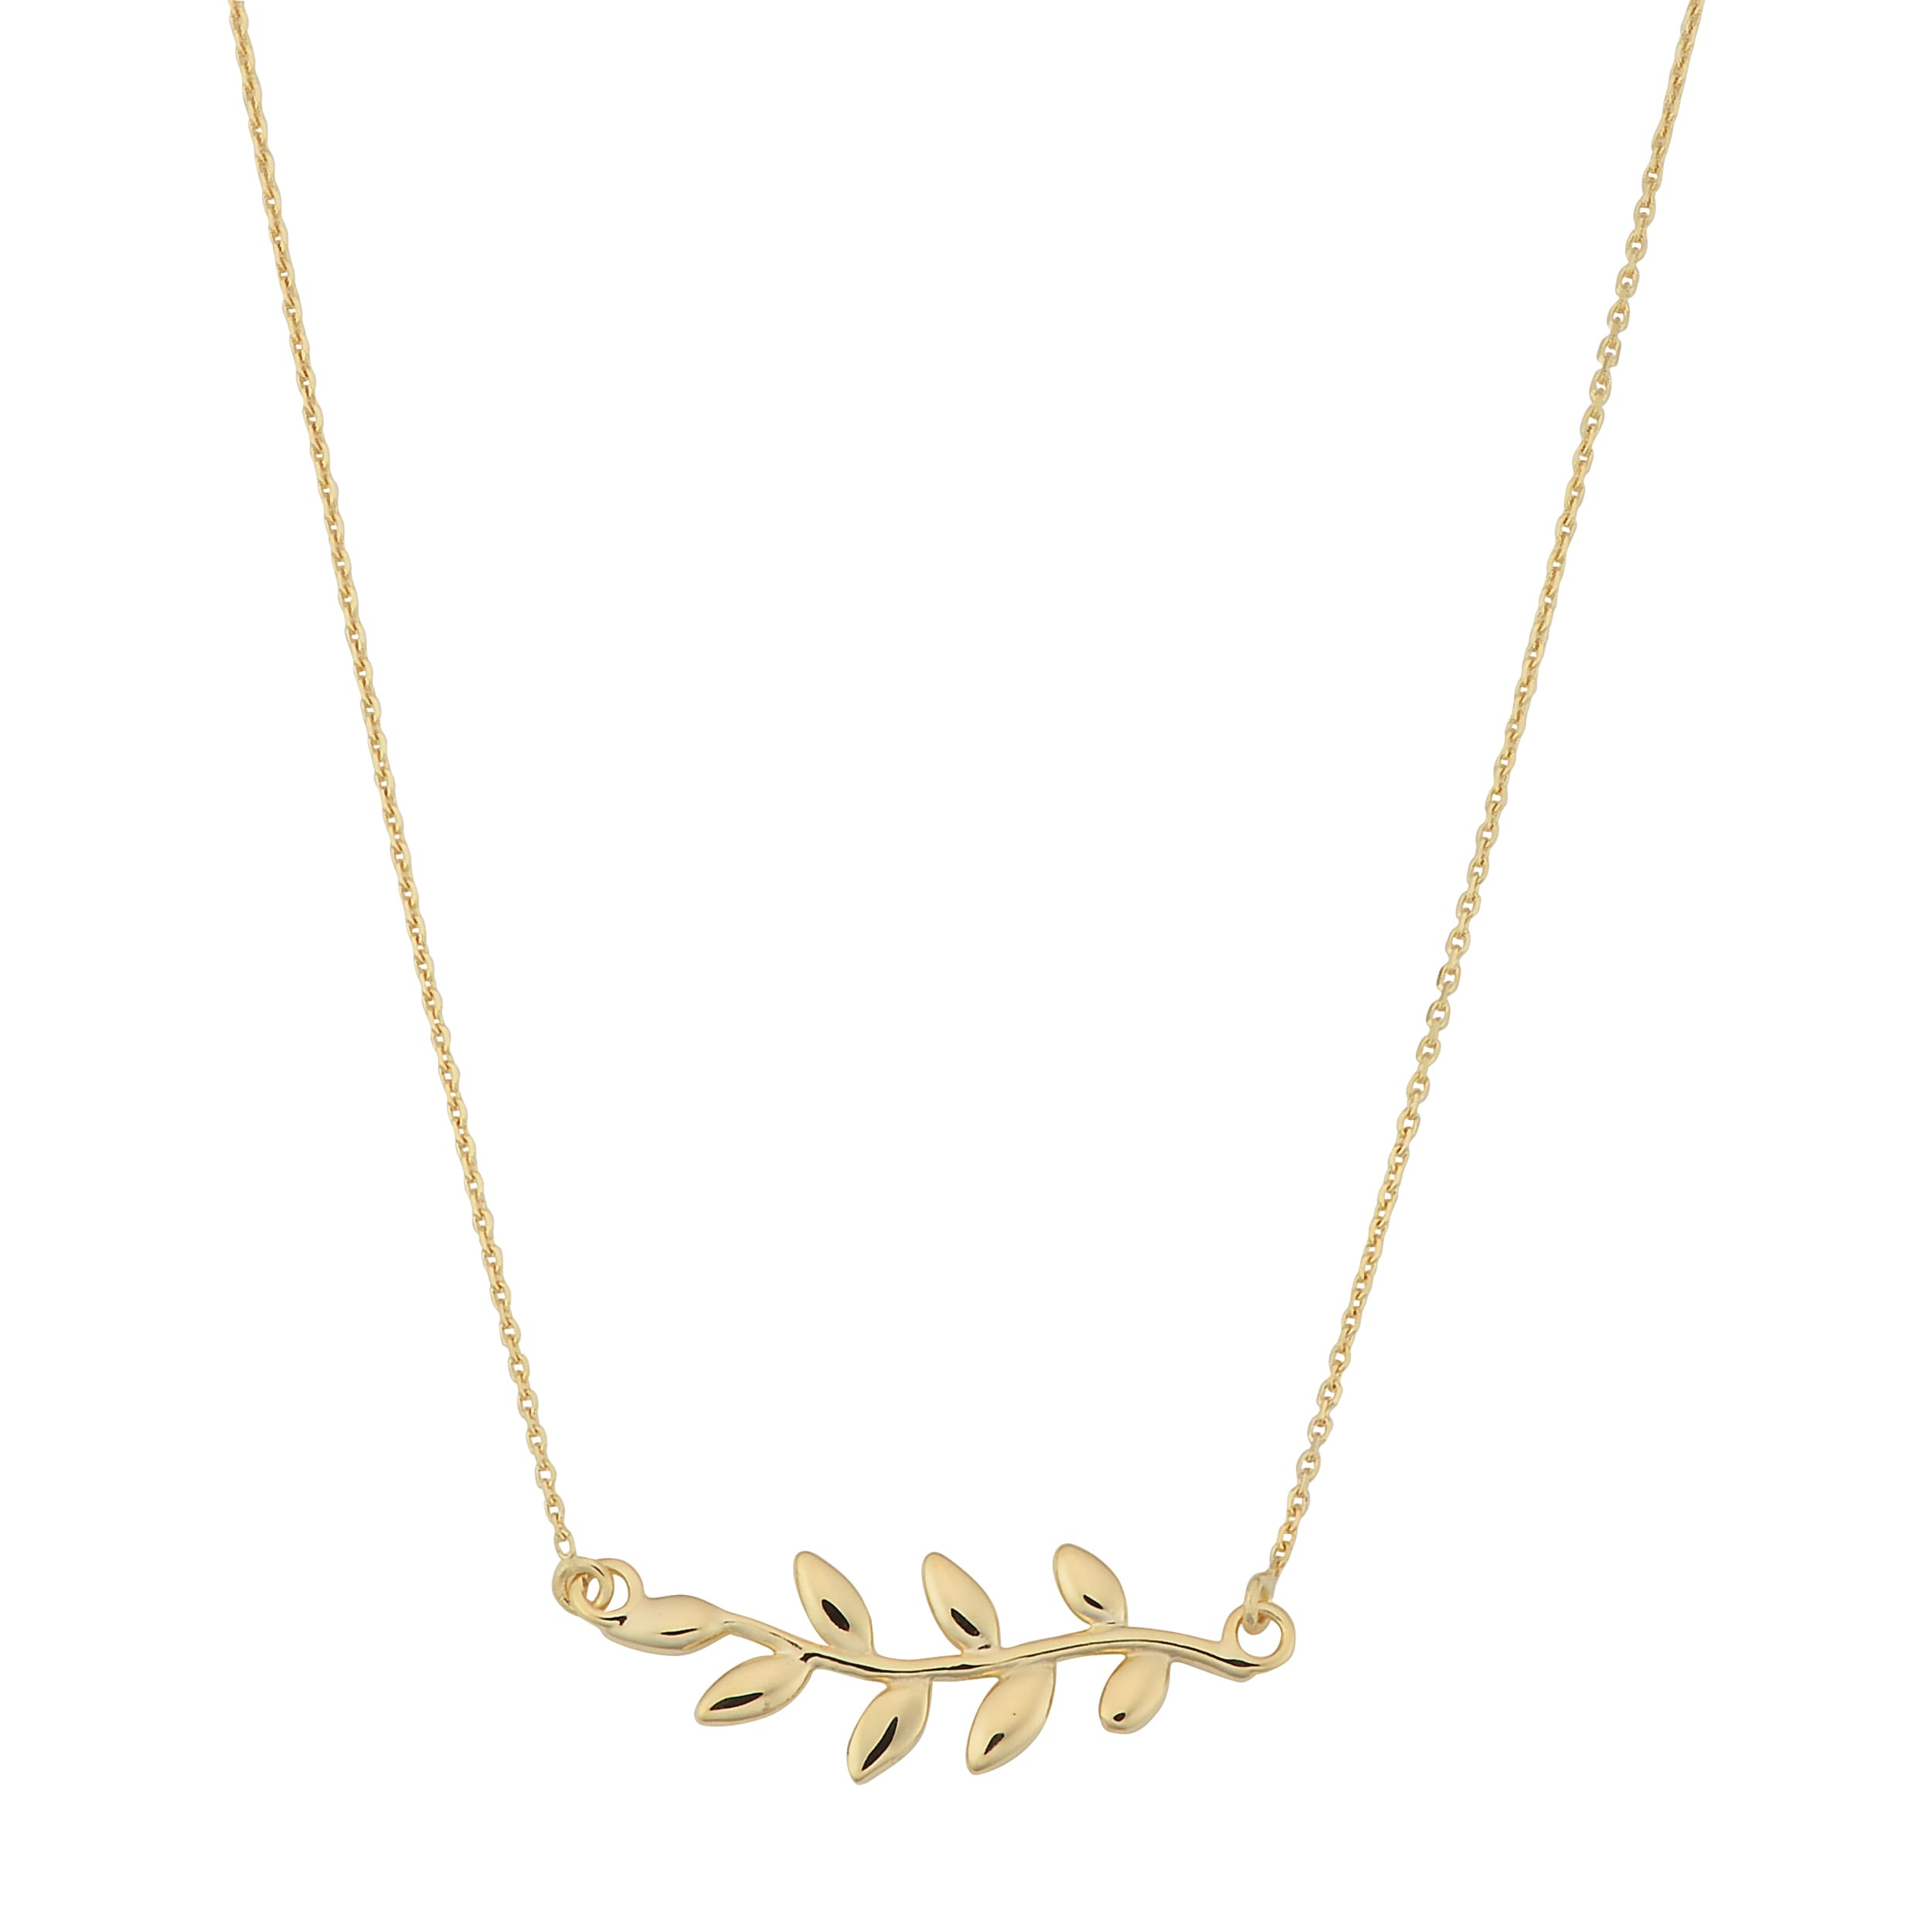 jewellery dove monroe silverado olive gold branch alex and products necklaces s necklace silver designer